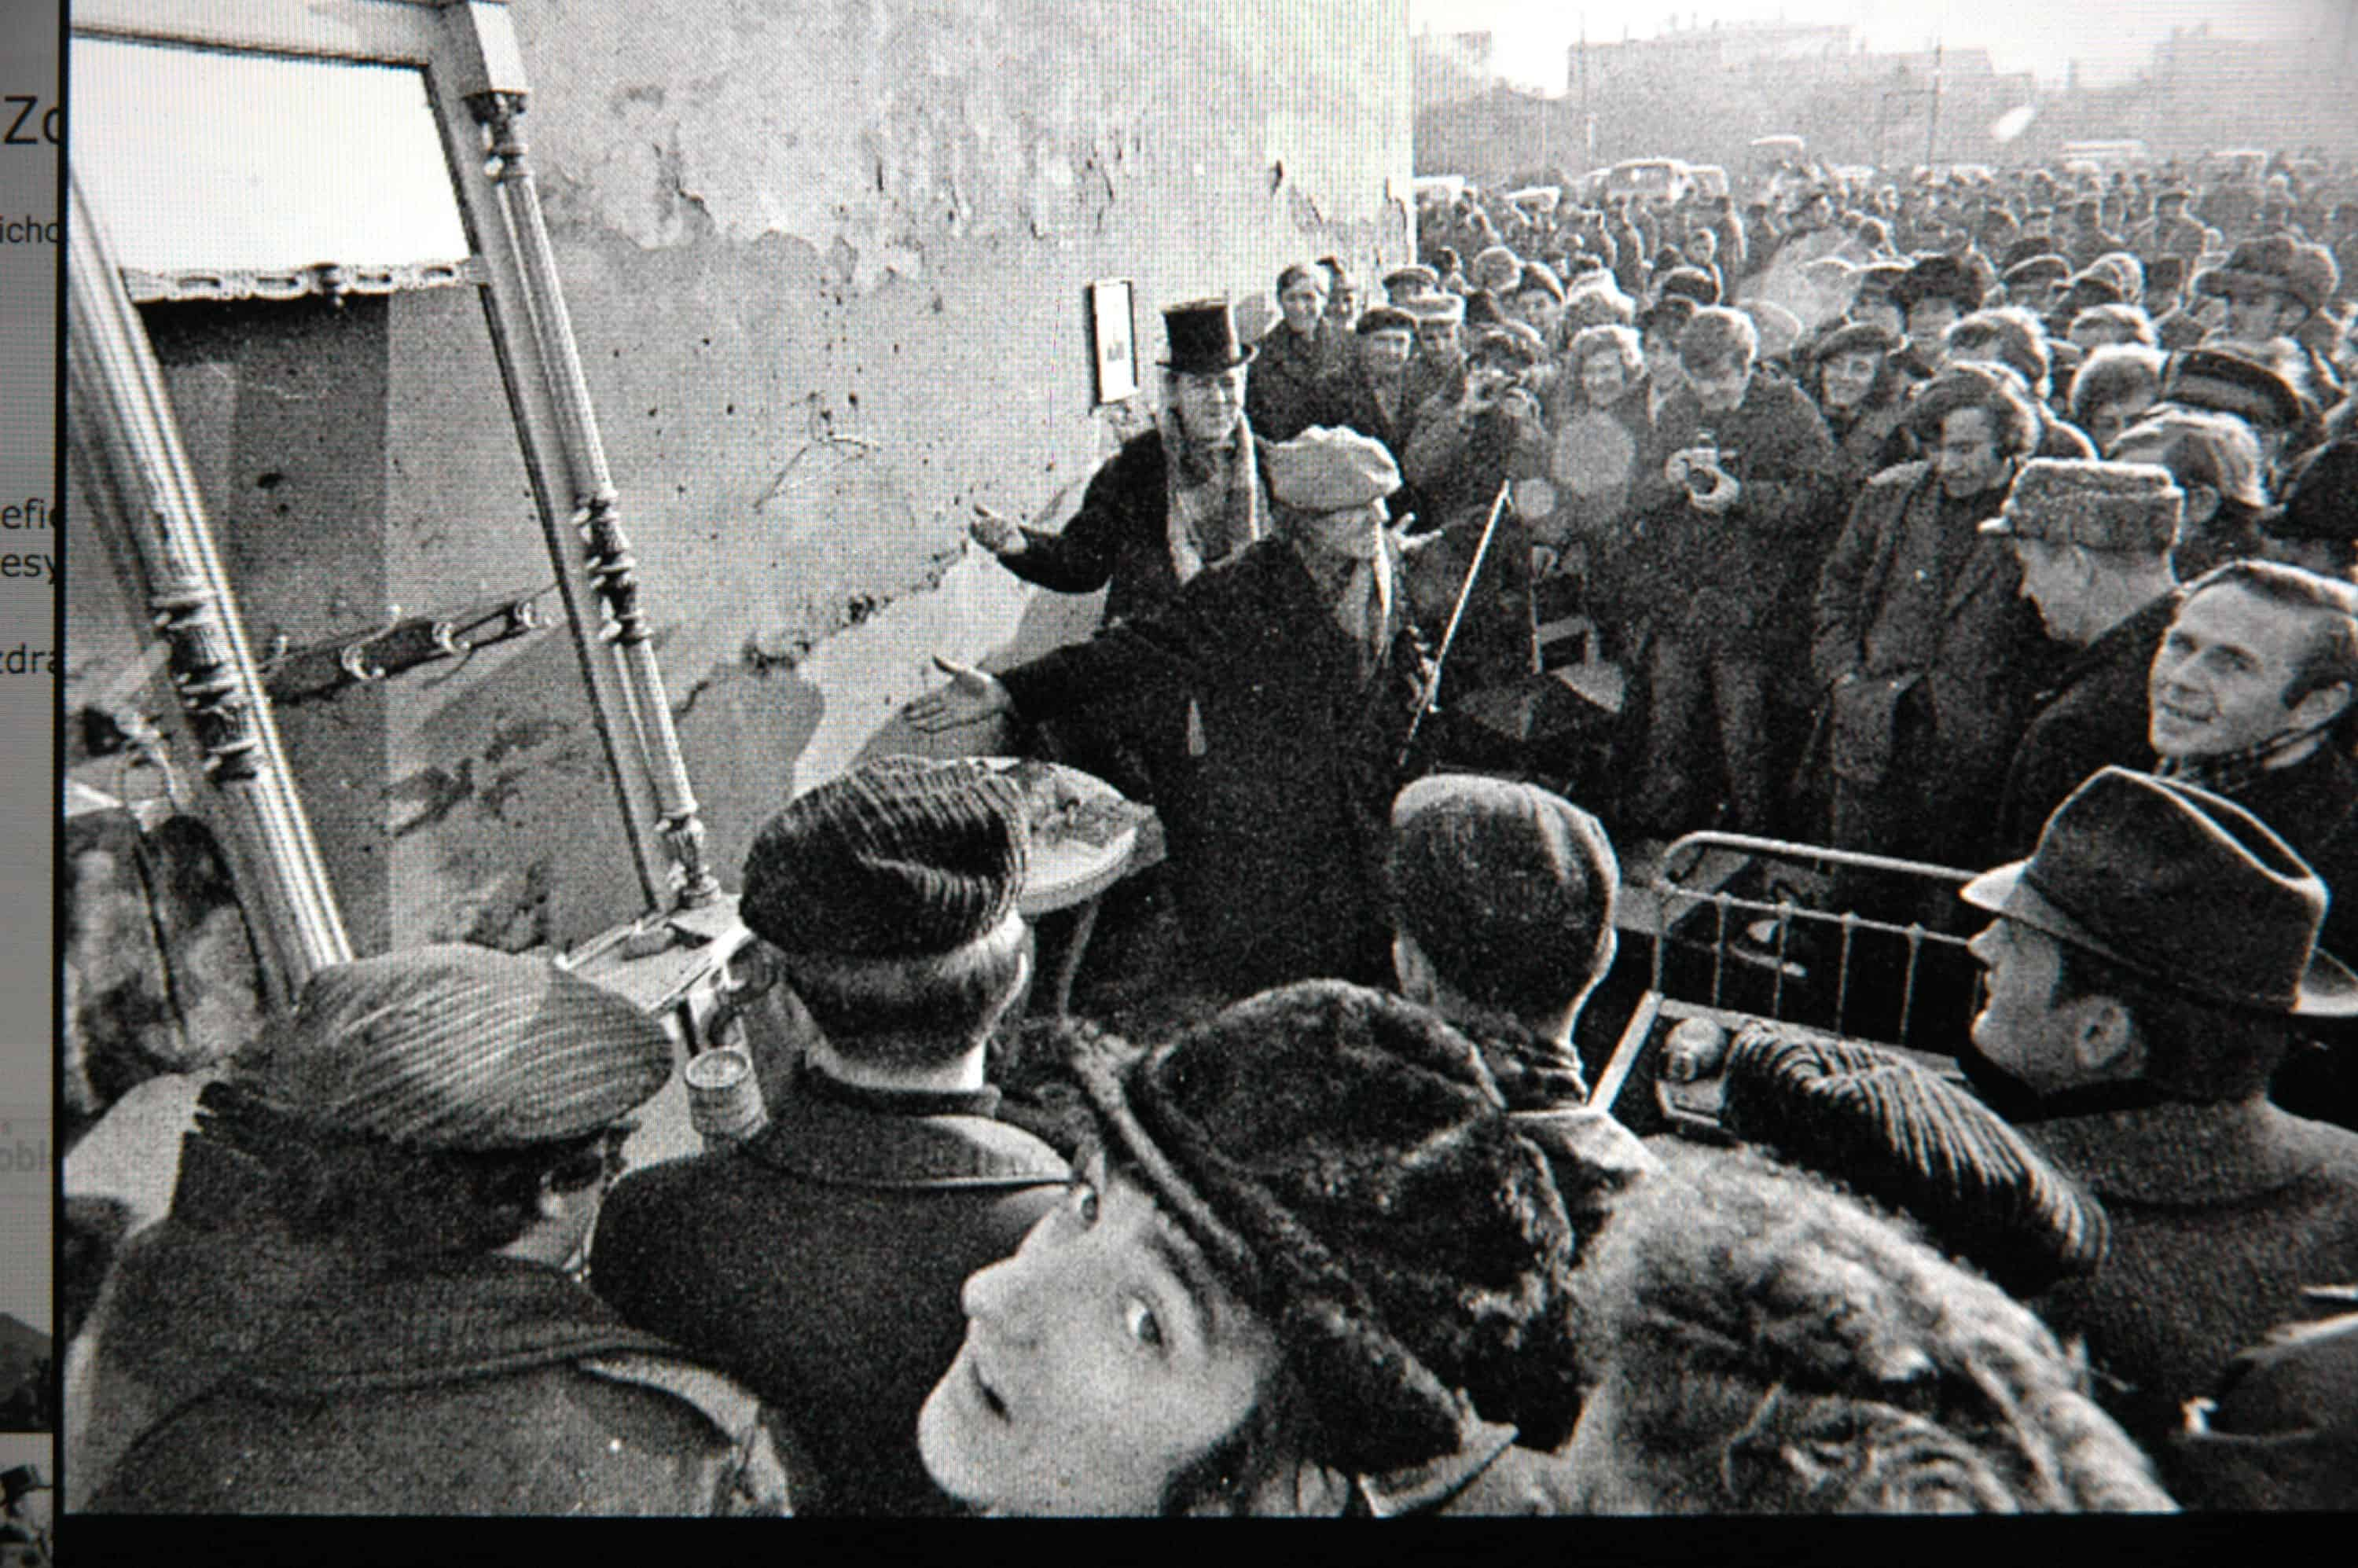 """Józef Robakowski, """"The Sale of Furniture,"""" public action in the market square in Łódź, 1971 (photo by Janusz Połom), courtesy of the Exchange Gallery"""